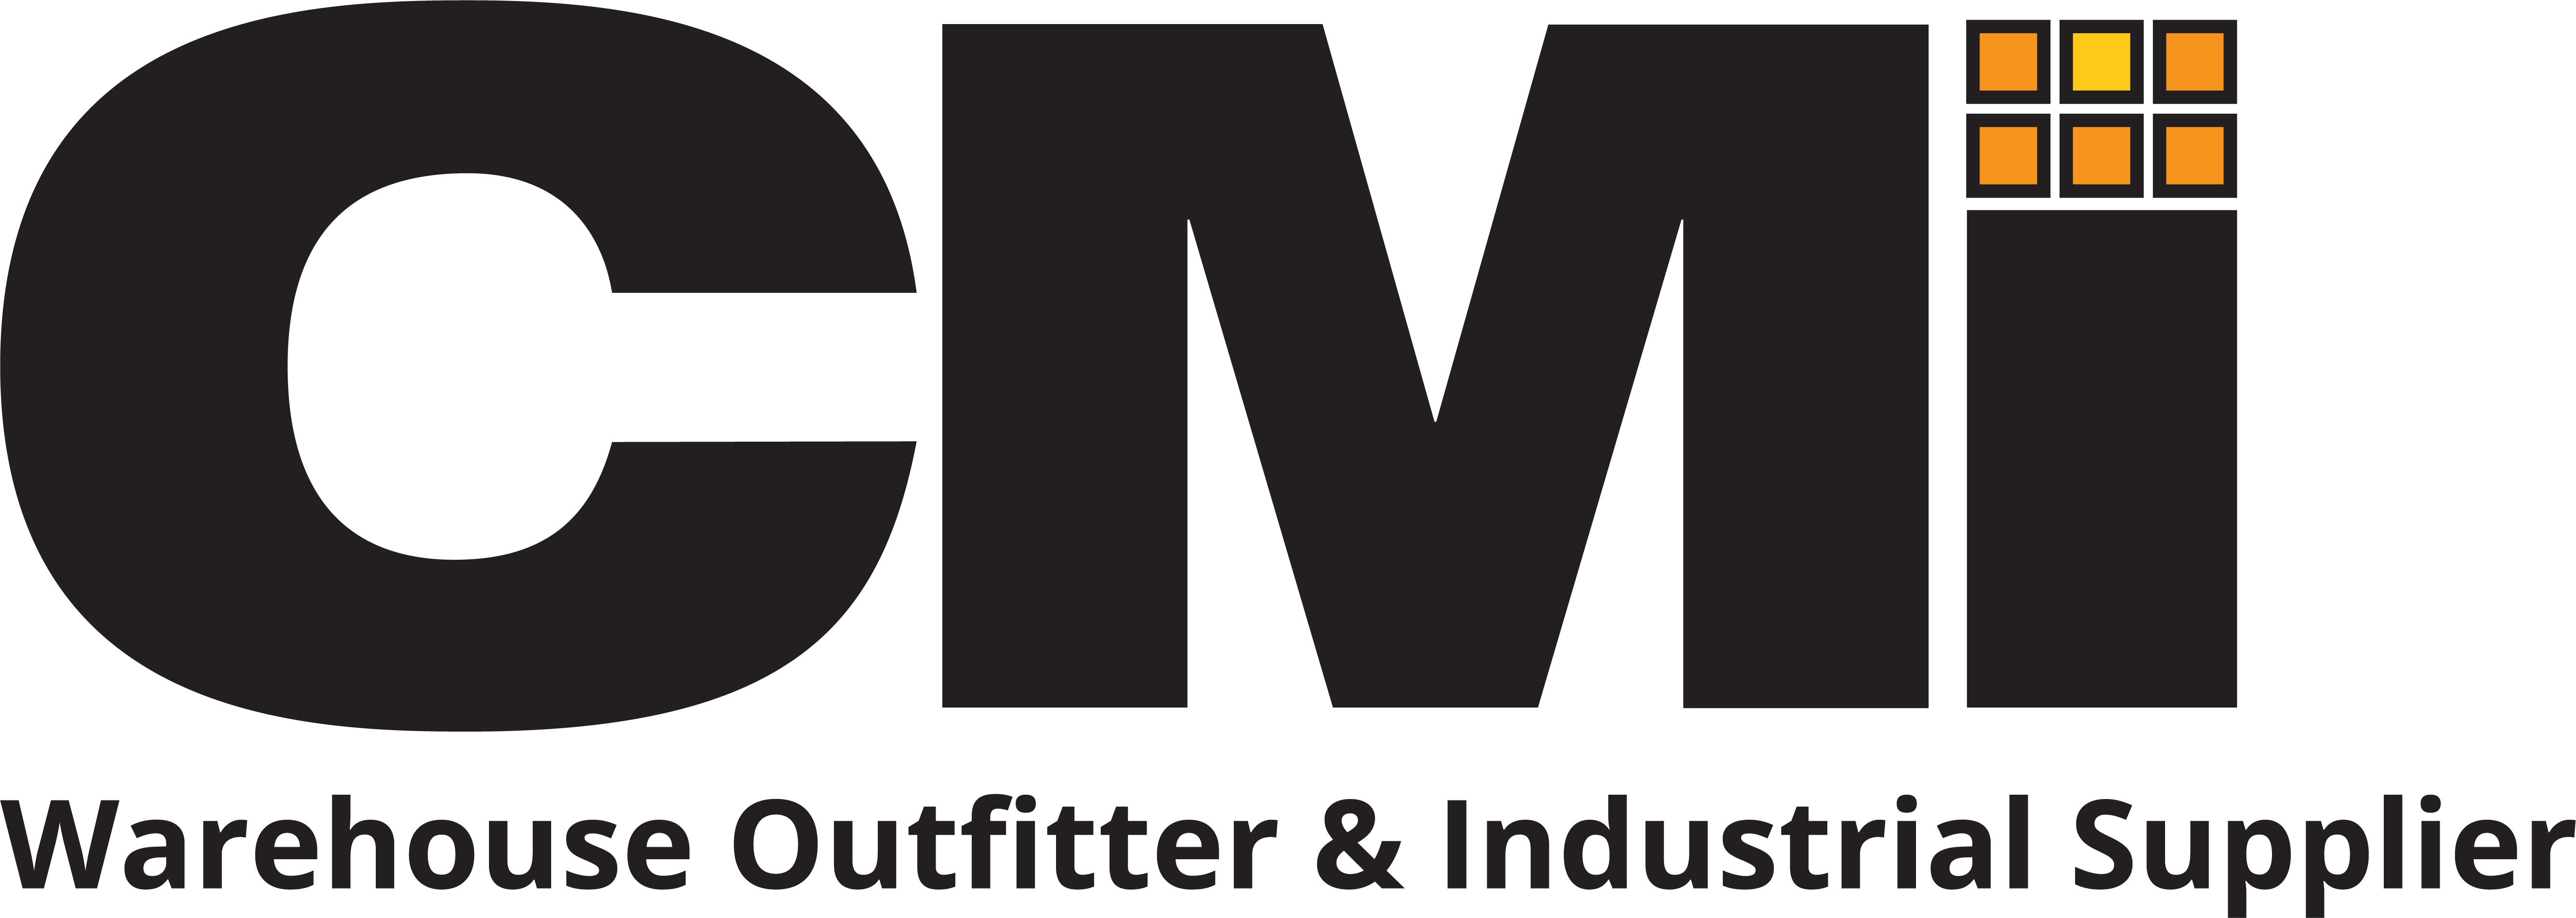 CMI Warehouse Outfitter & Industrial Supplier